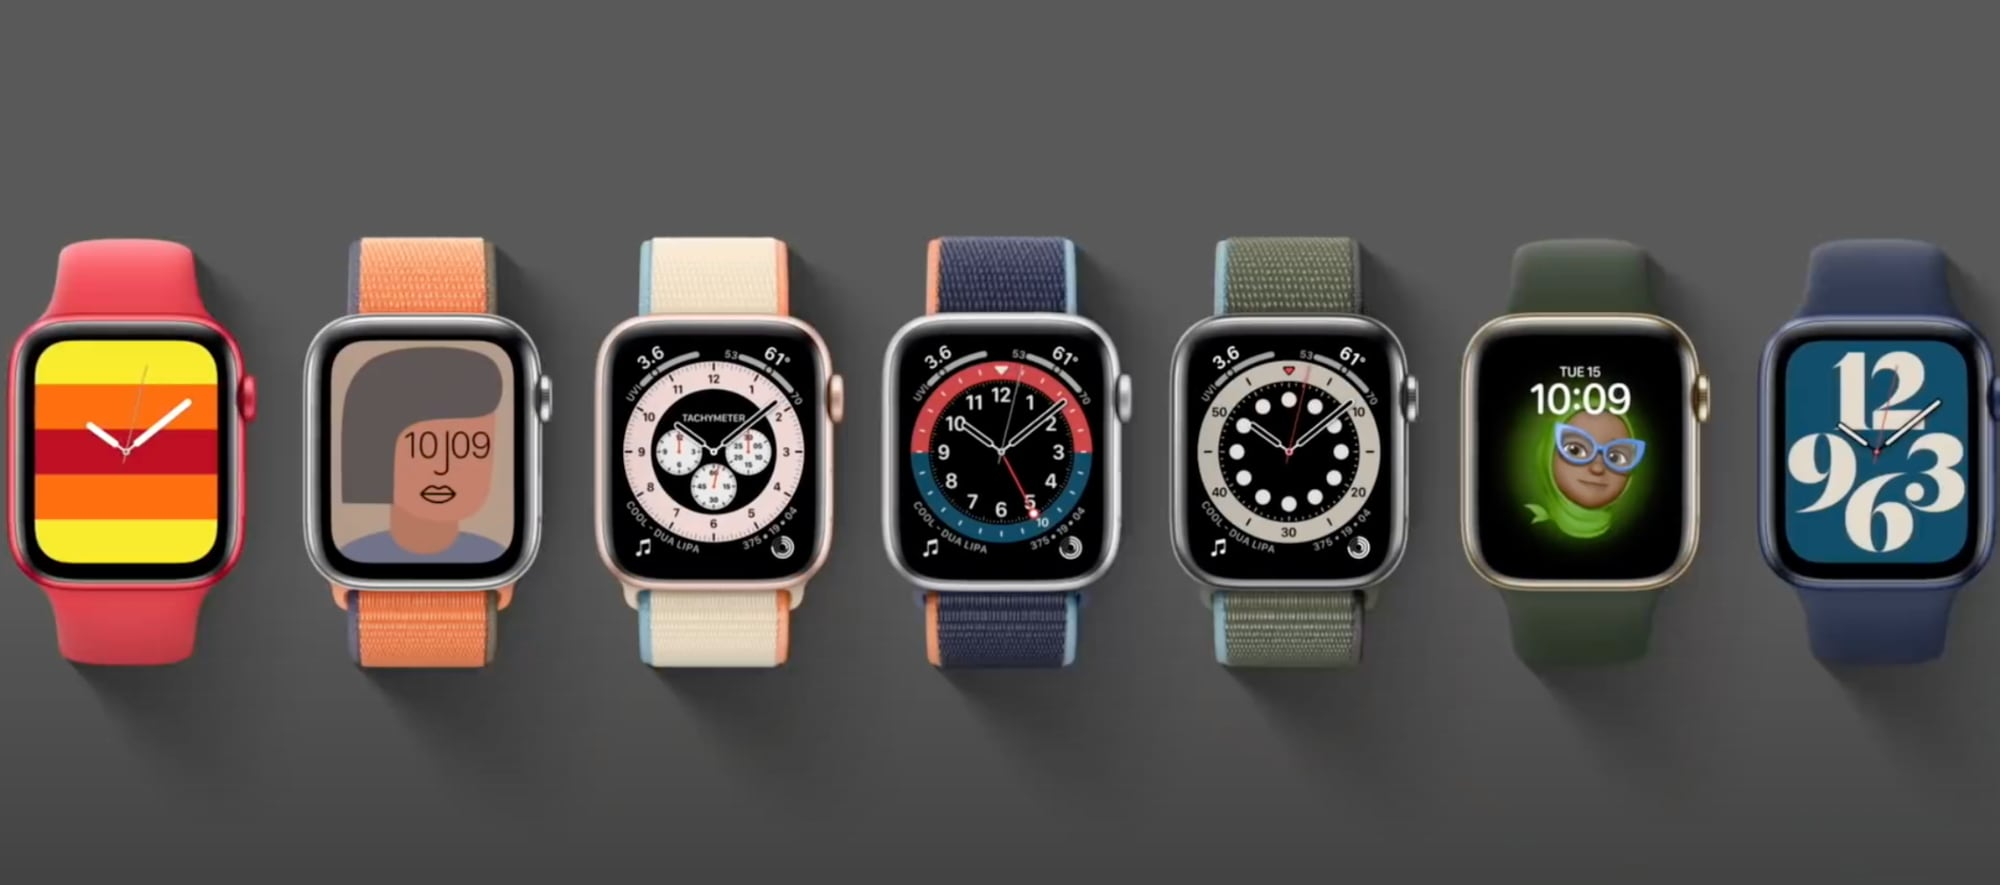 newapplewatchfaces